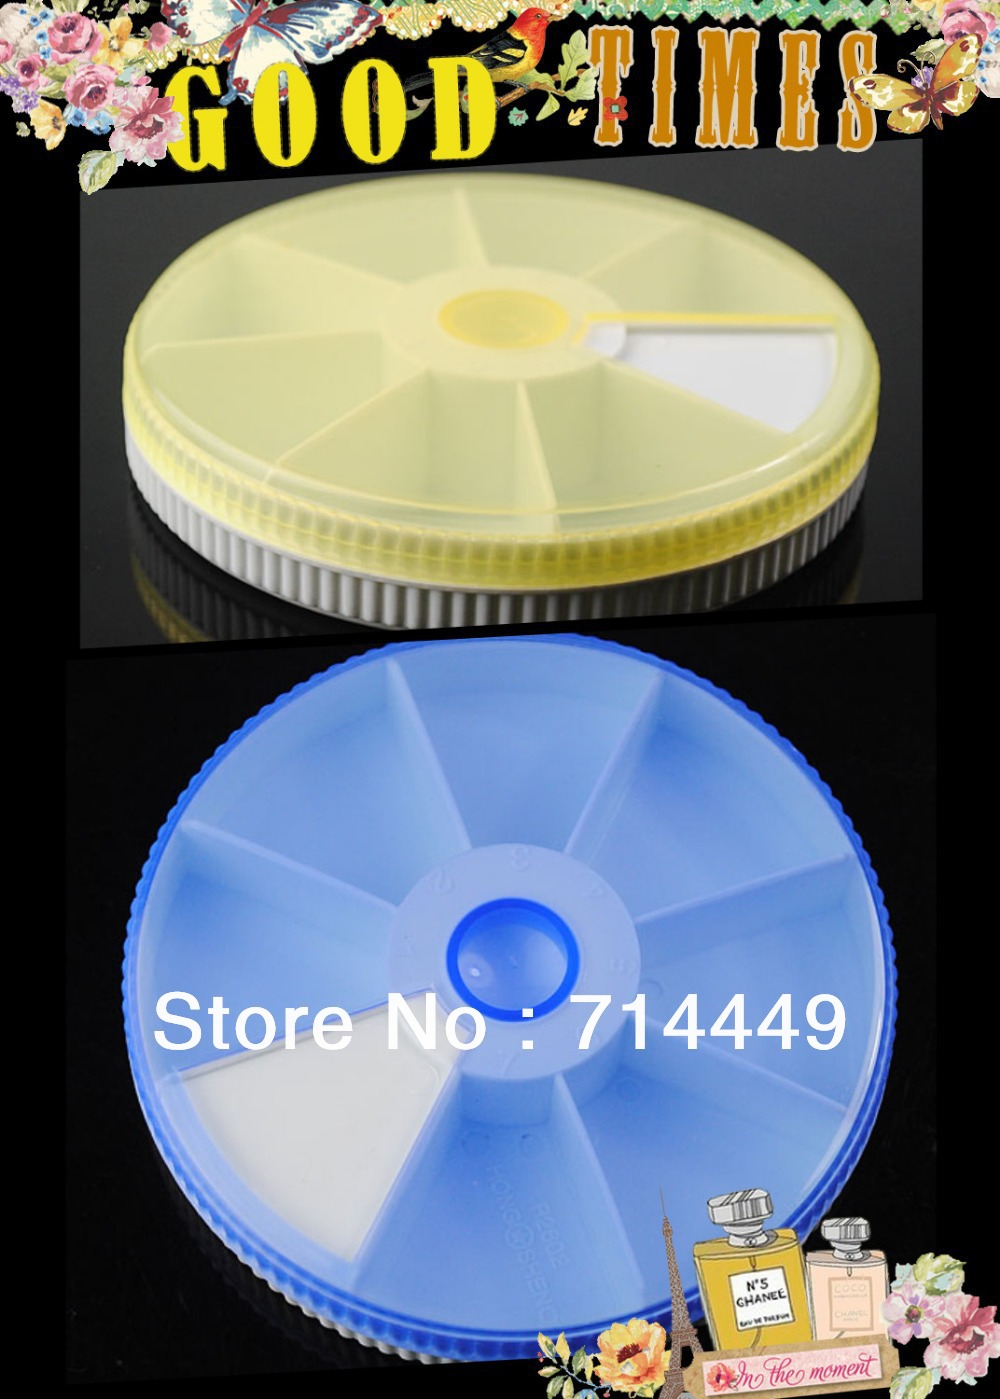 New Portable Rotundity Medicine Case Organizer Pillbox Drug Box Compact Size Candy Color 7 Fan-shaped compartments(China (Mainland))